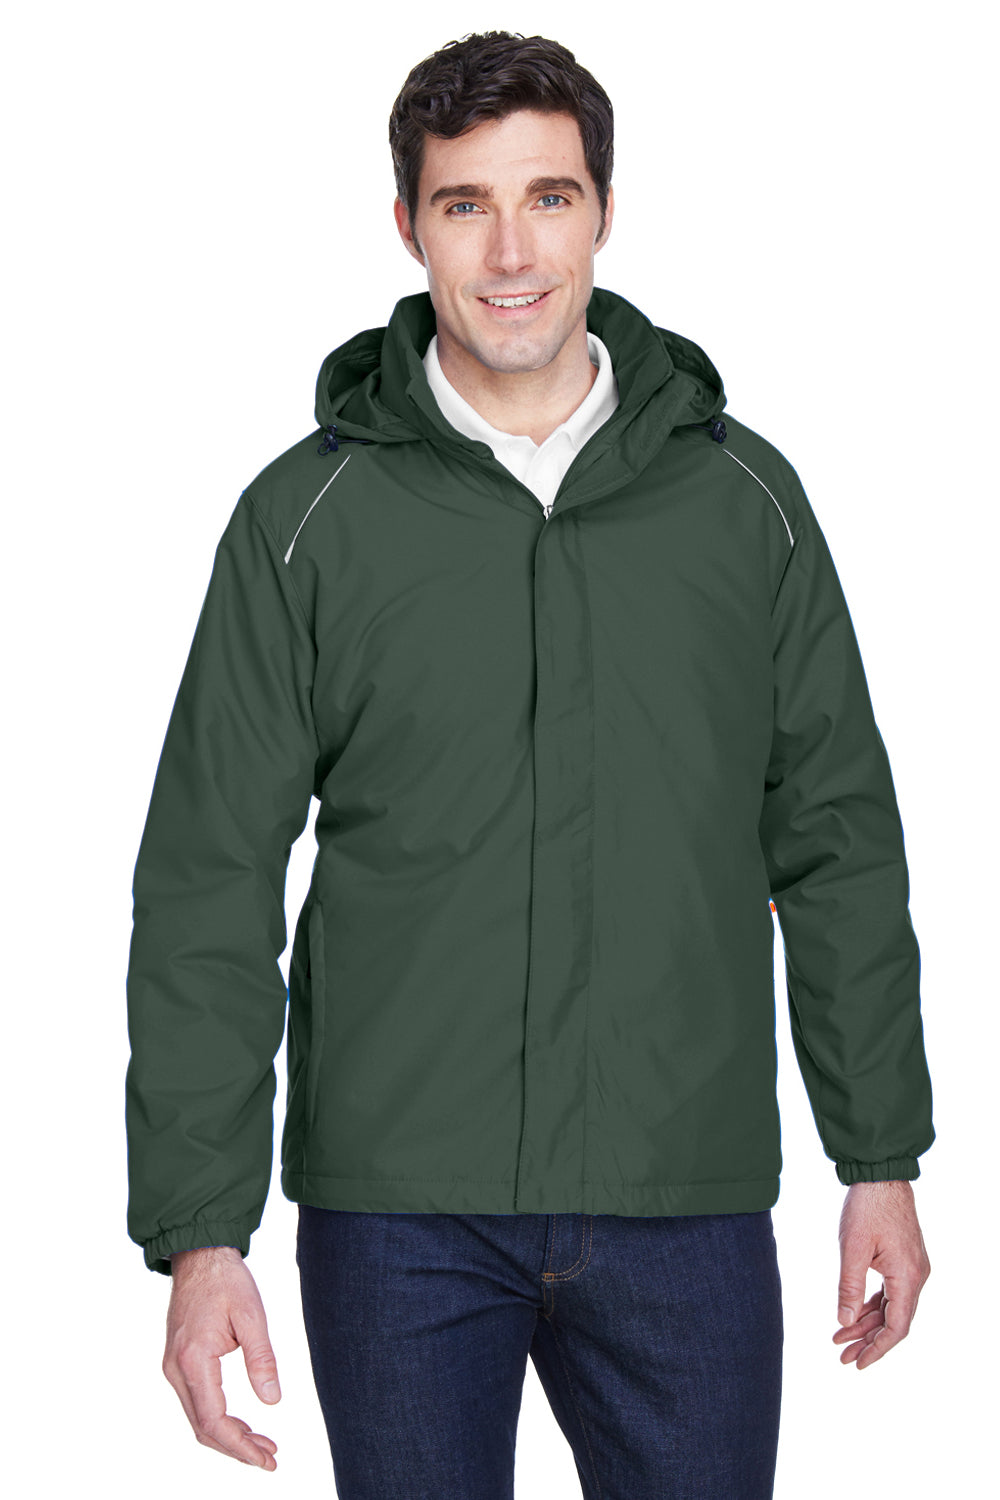 Core 365 88189 Mens Brisk Full Zip Hooded Jacket Forest Green Front